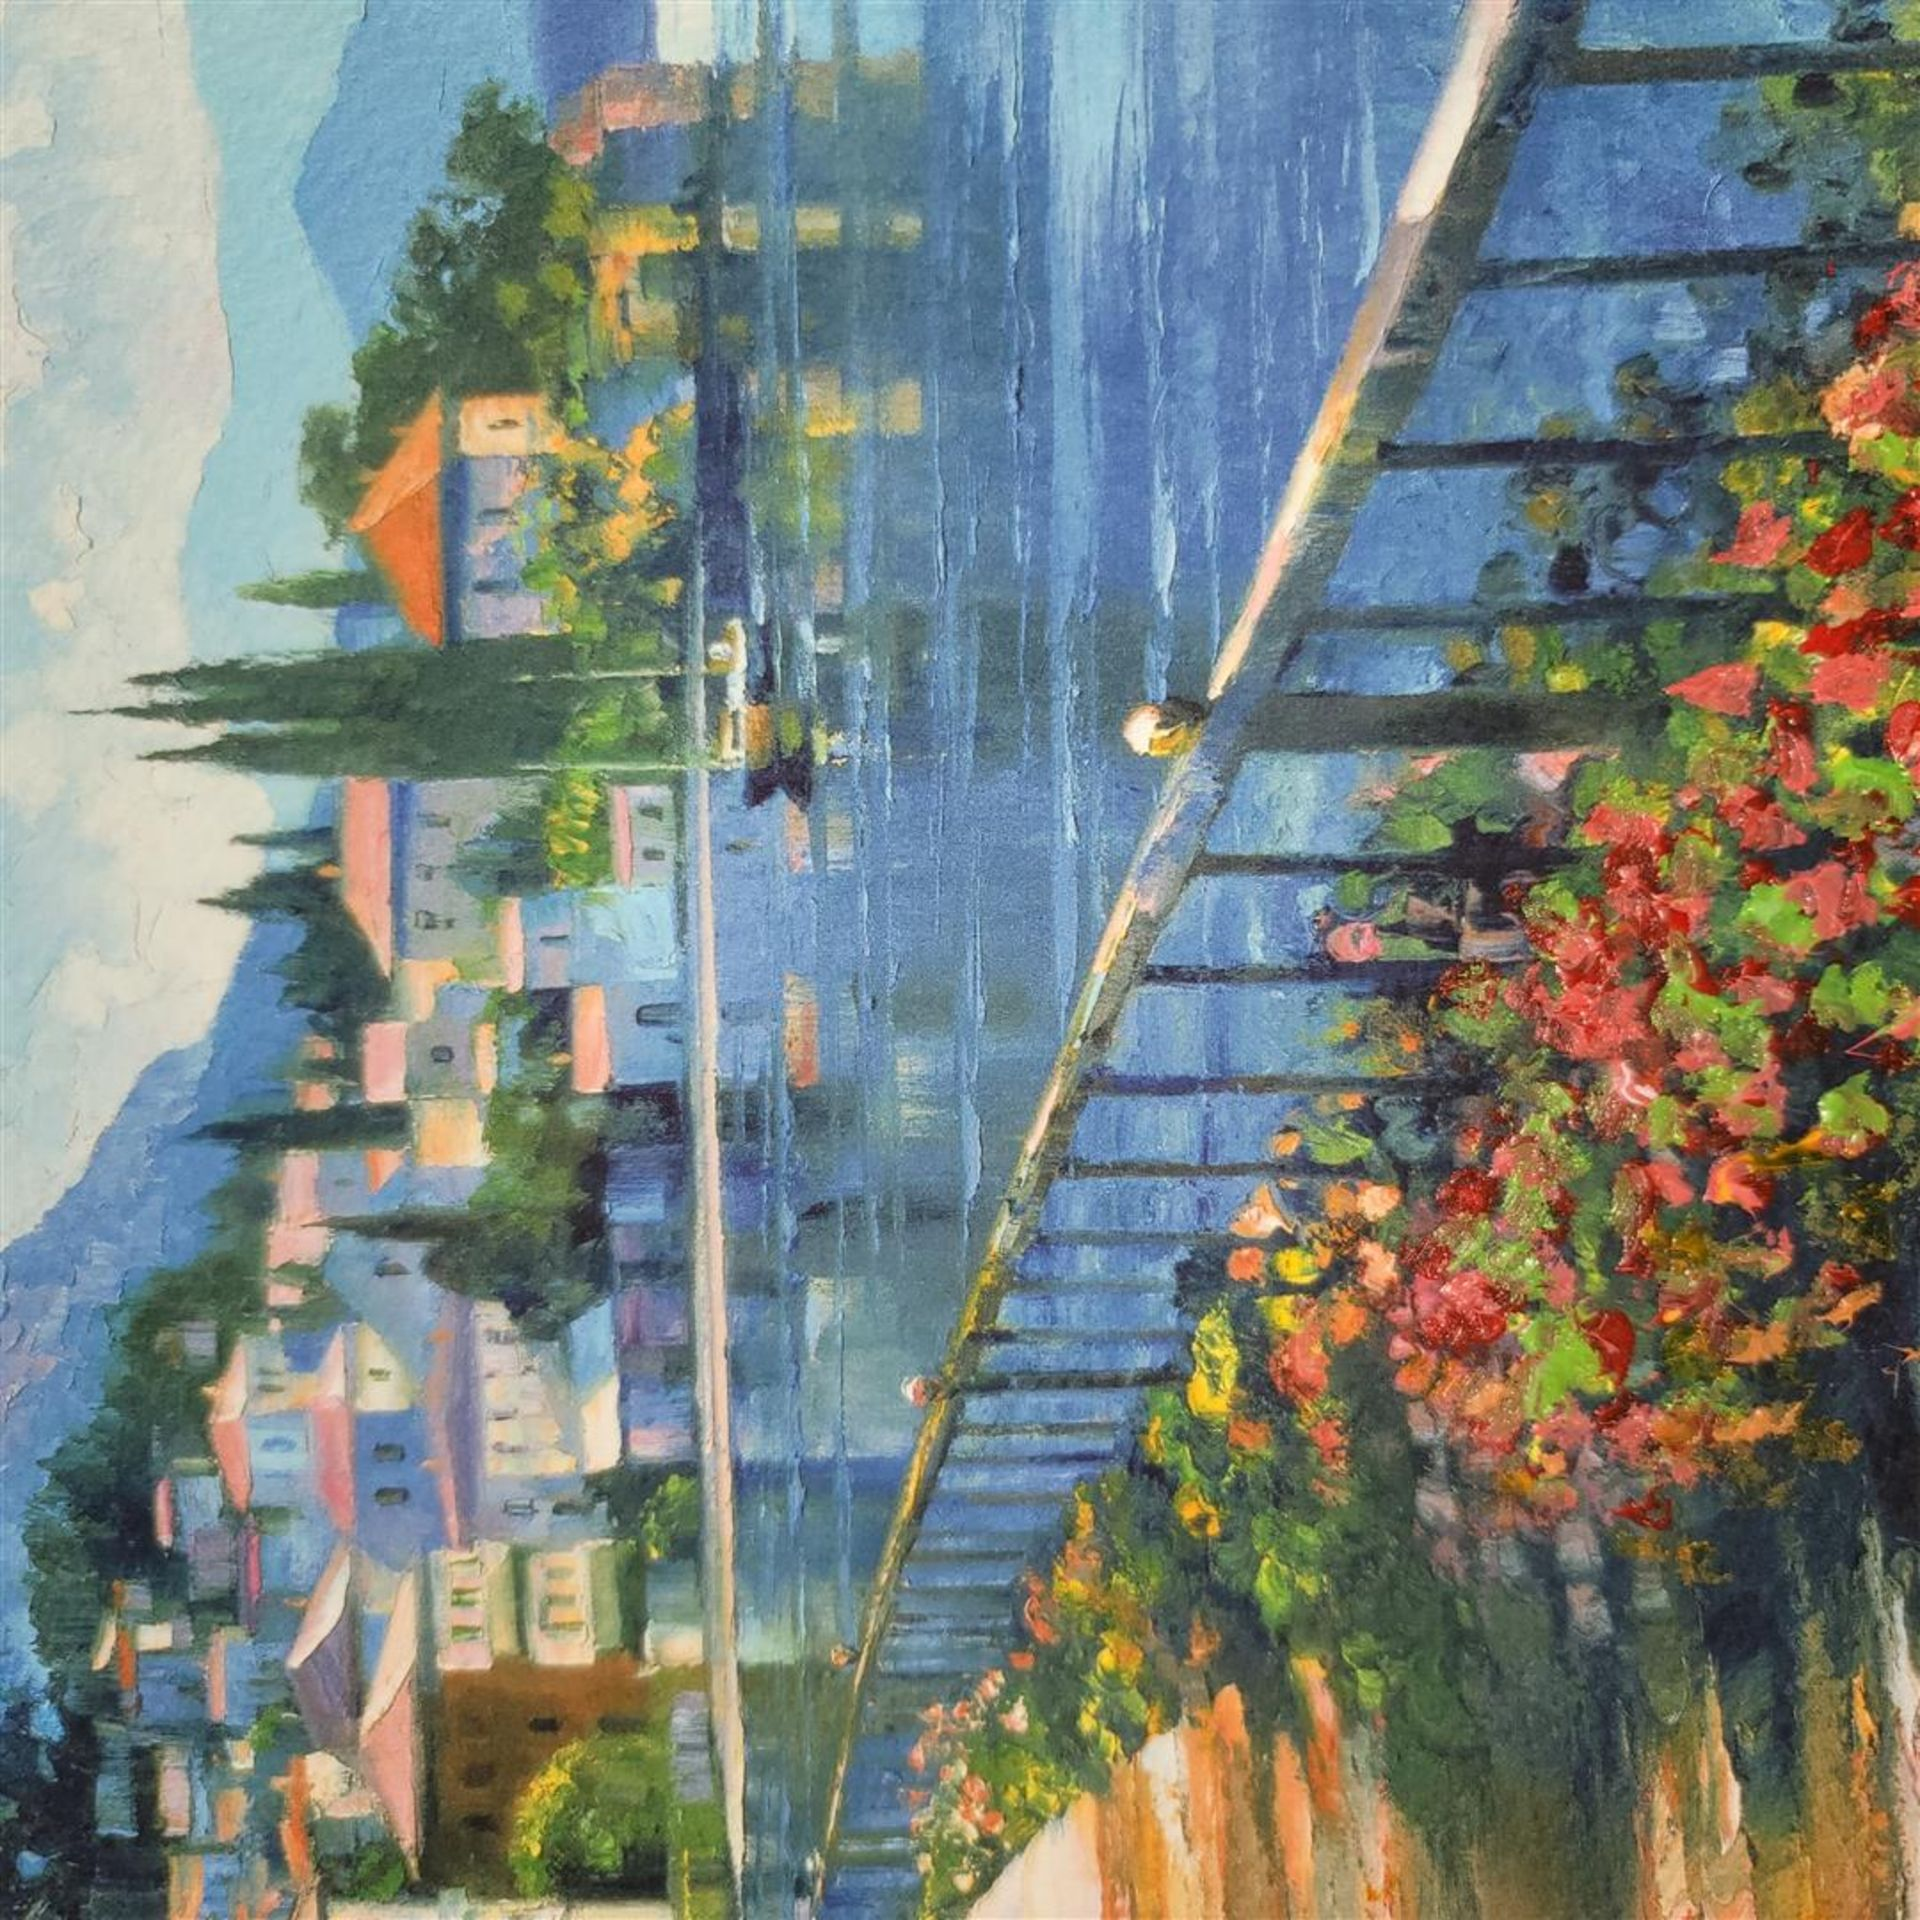 """Sunlit Stroll"" by Howard Behrens - Signed, Numbered, & Embellished - Image 4 of 4"